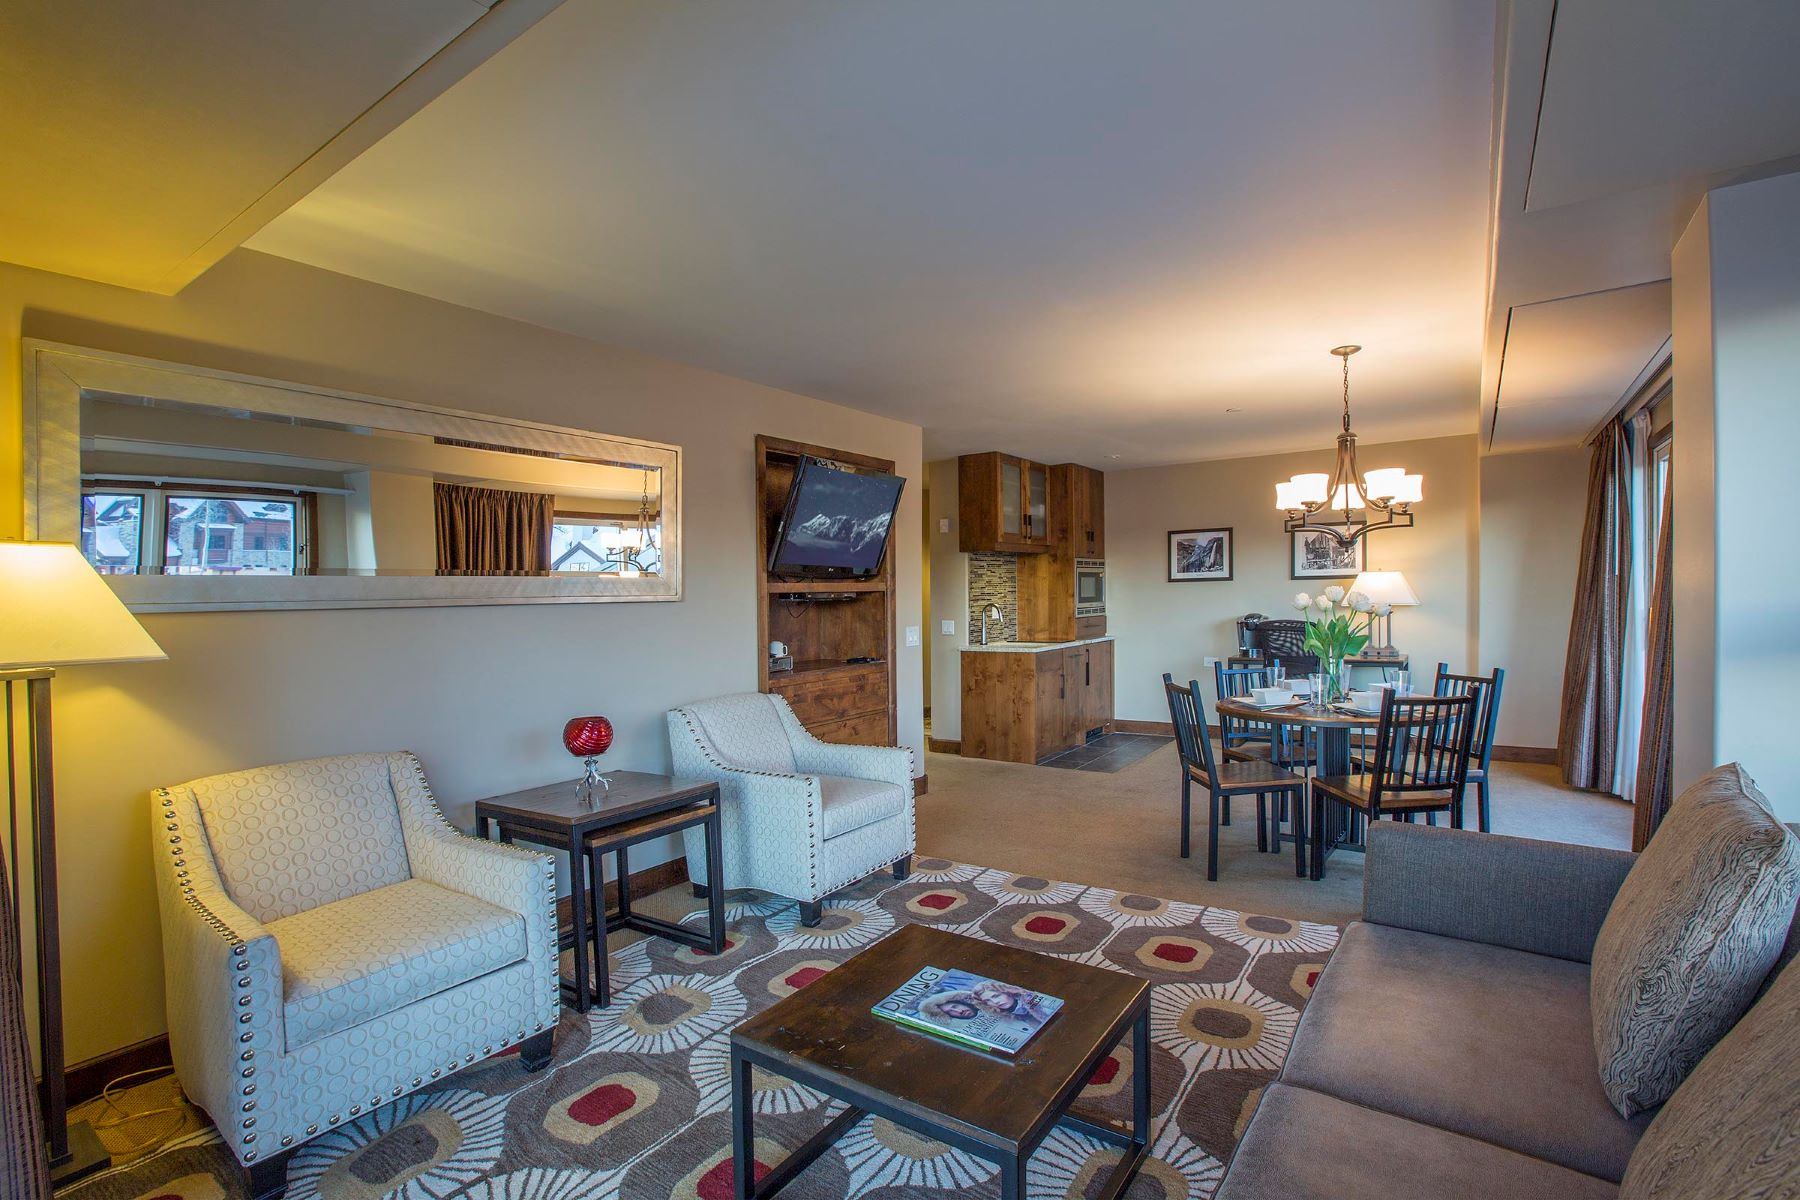 Condominium for Sale at Peaks Resort & Spa Unit 346 136 Country Club Drive, Unit 346 Telluride, Colorado, 81435 United States